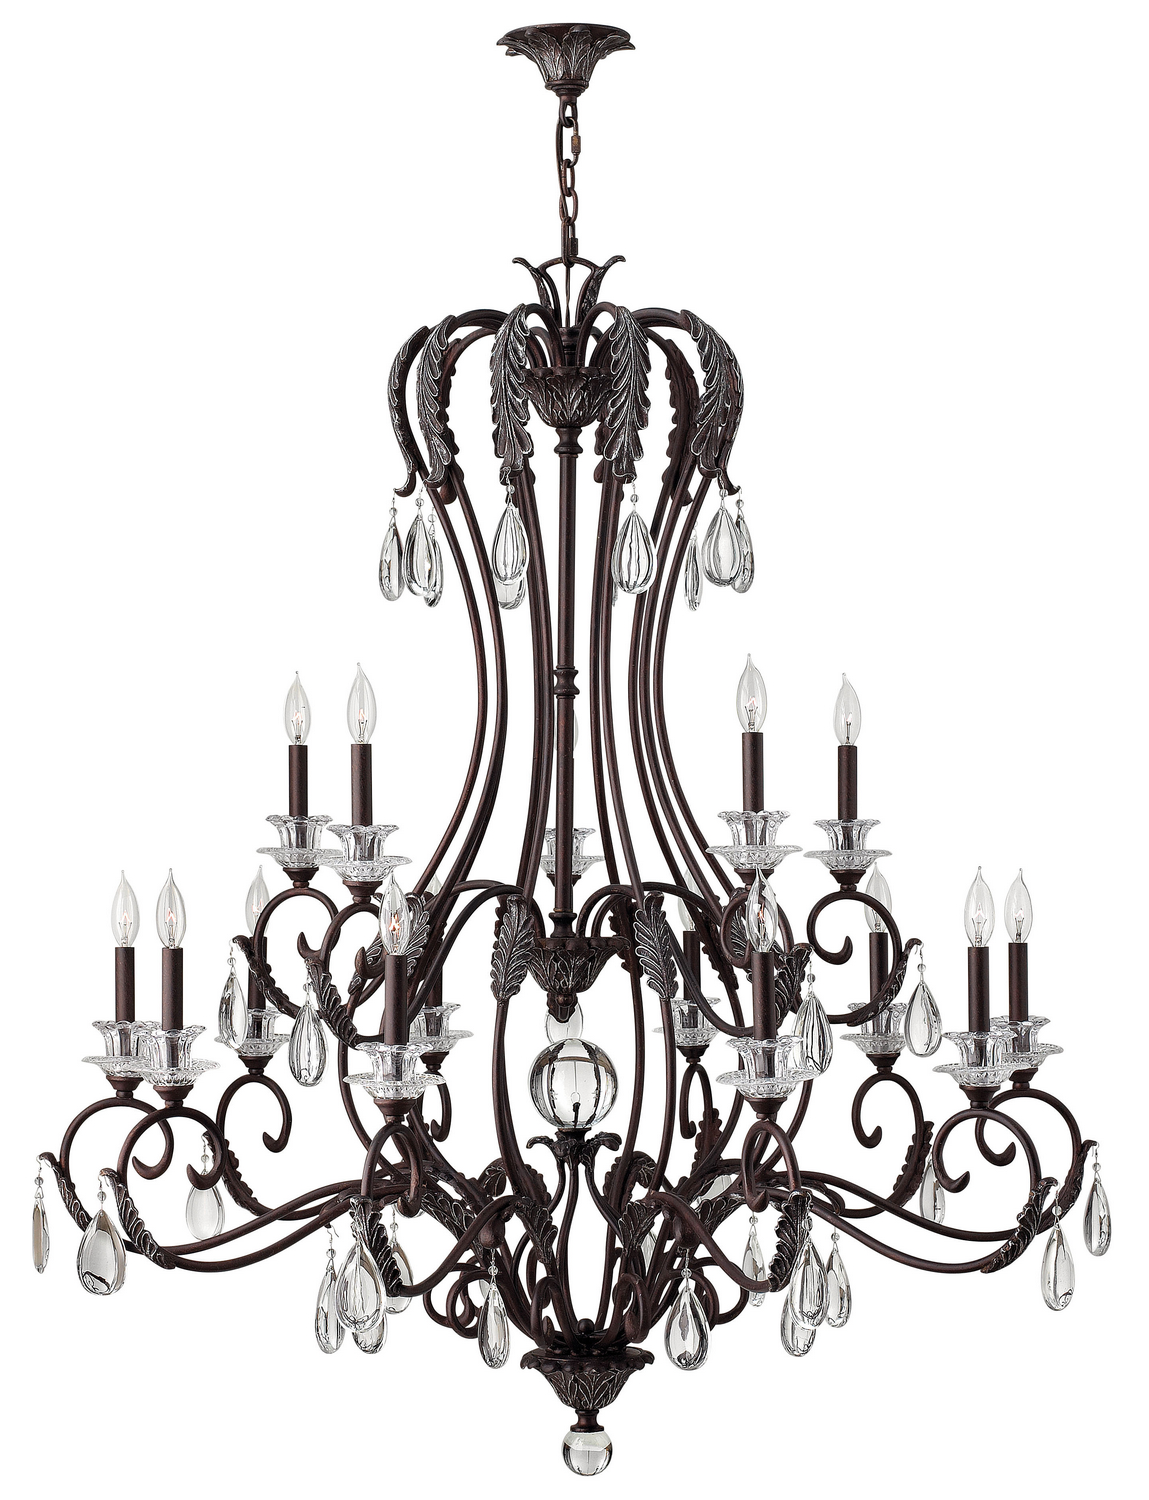 15 Light Foyer Pendant from the Marcellina collection by Hinkley 4408GR